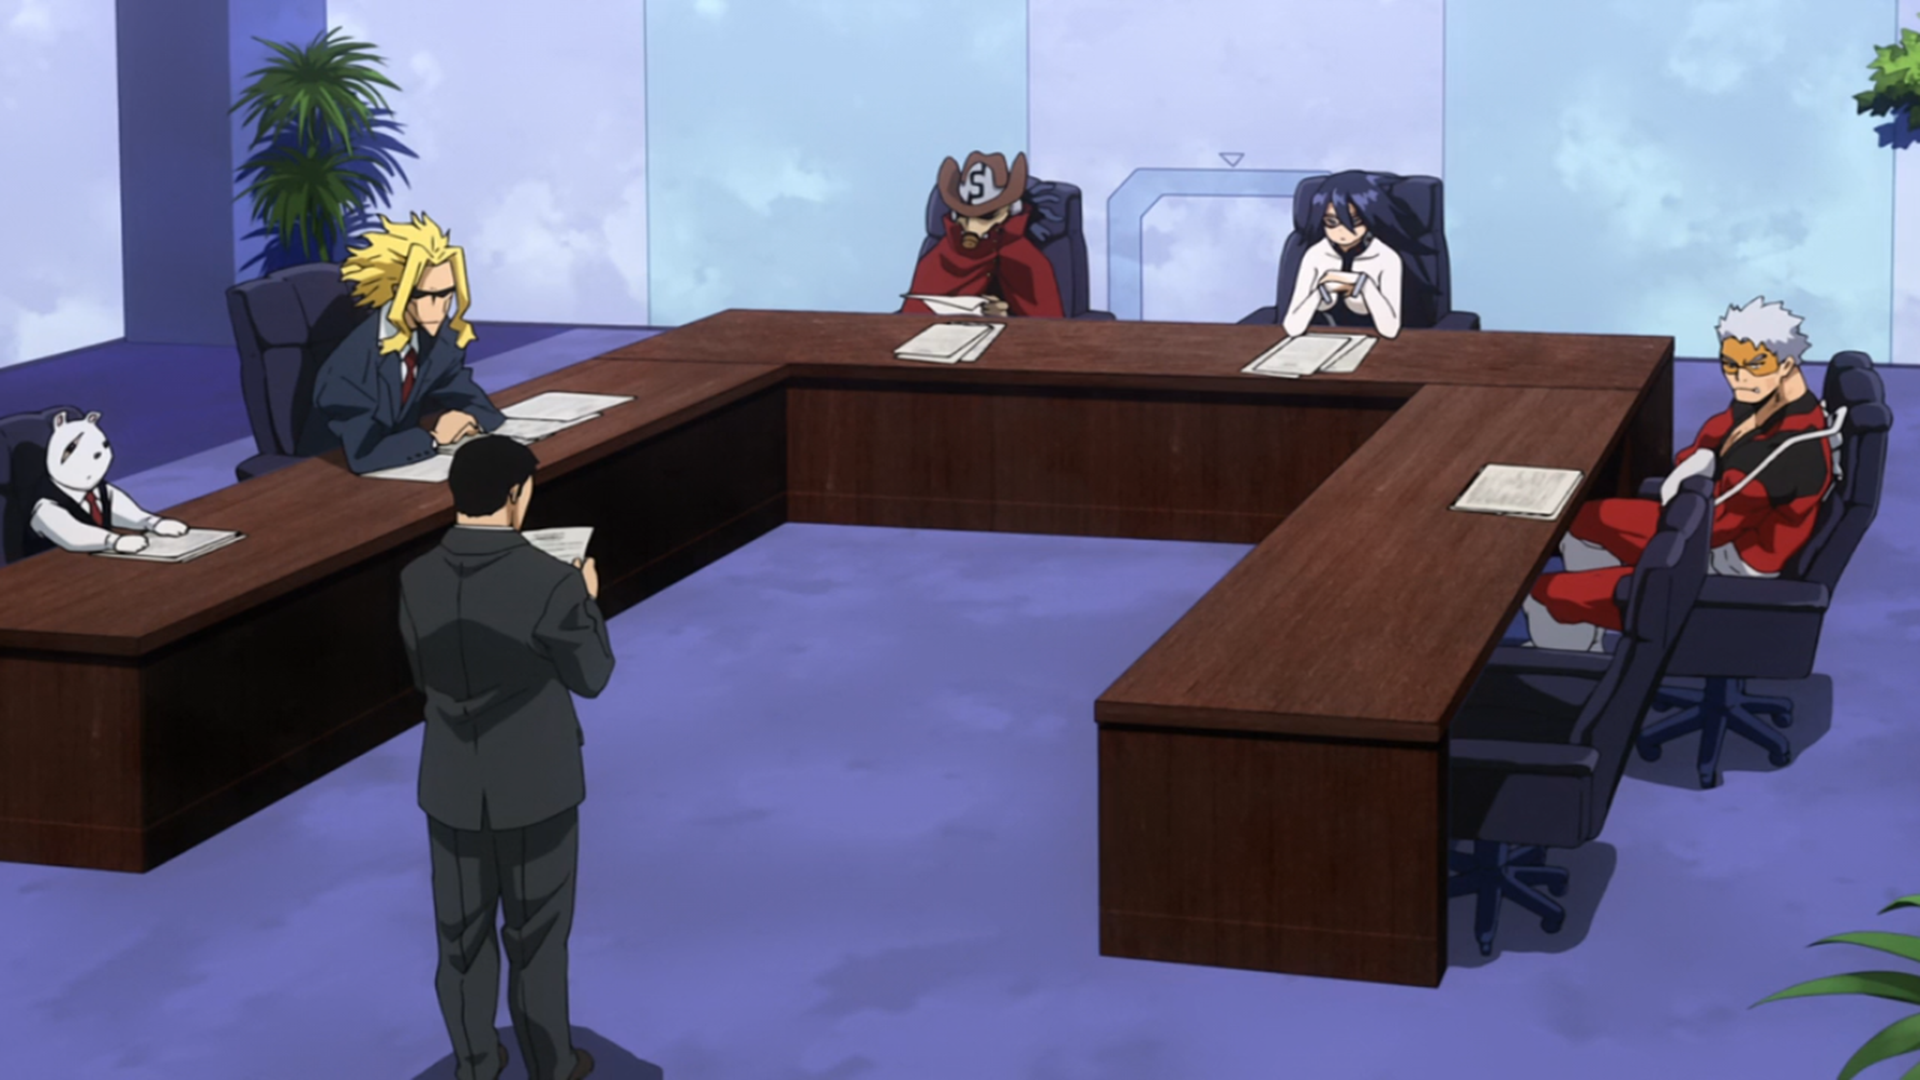 Conference Room (Anime).png